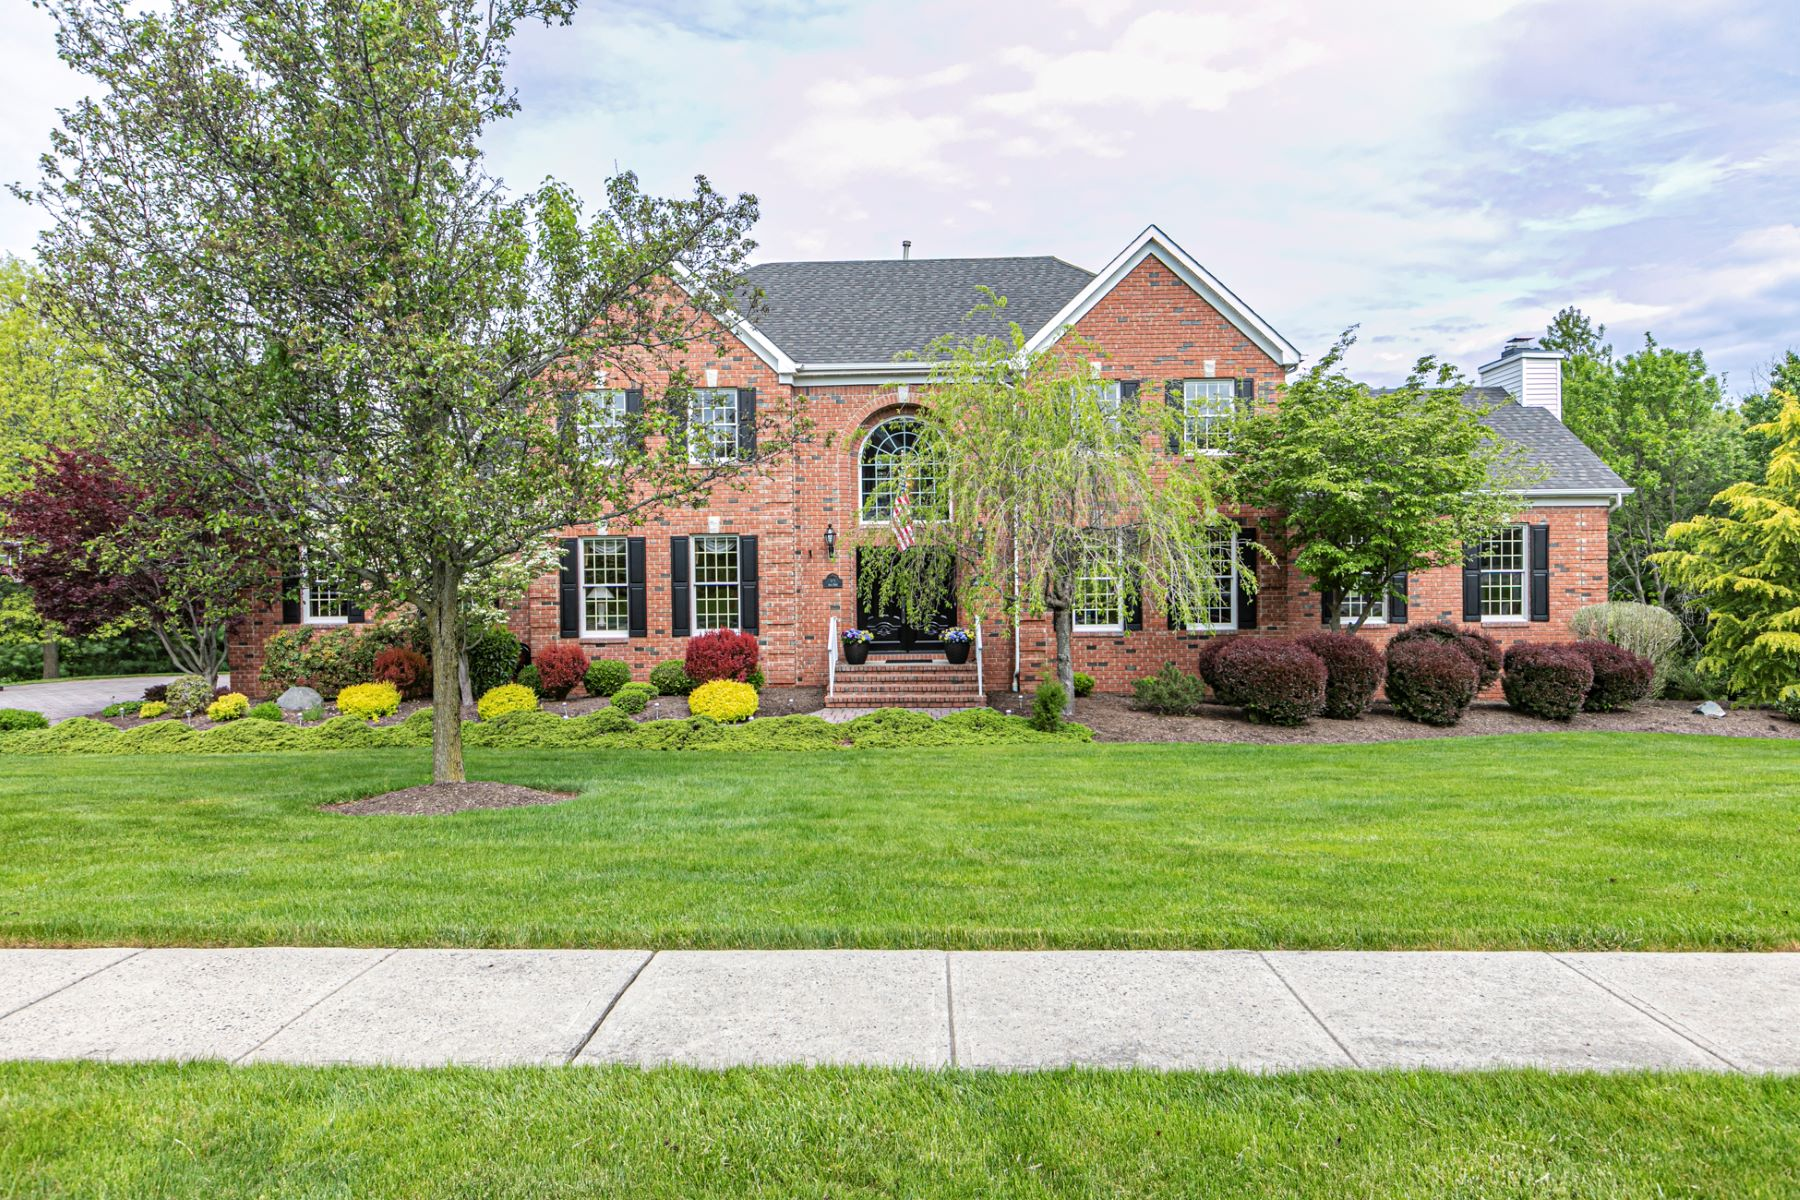 Additional photo for property listing at Blue Ribbon Home, Blue Ribbon Schools 93 Hills Drive, Belle Mead, New Jersey 08502 United States